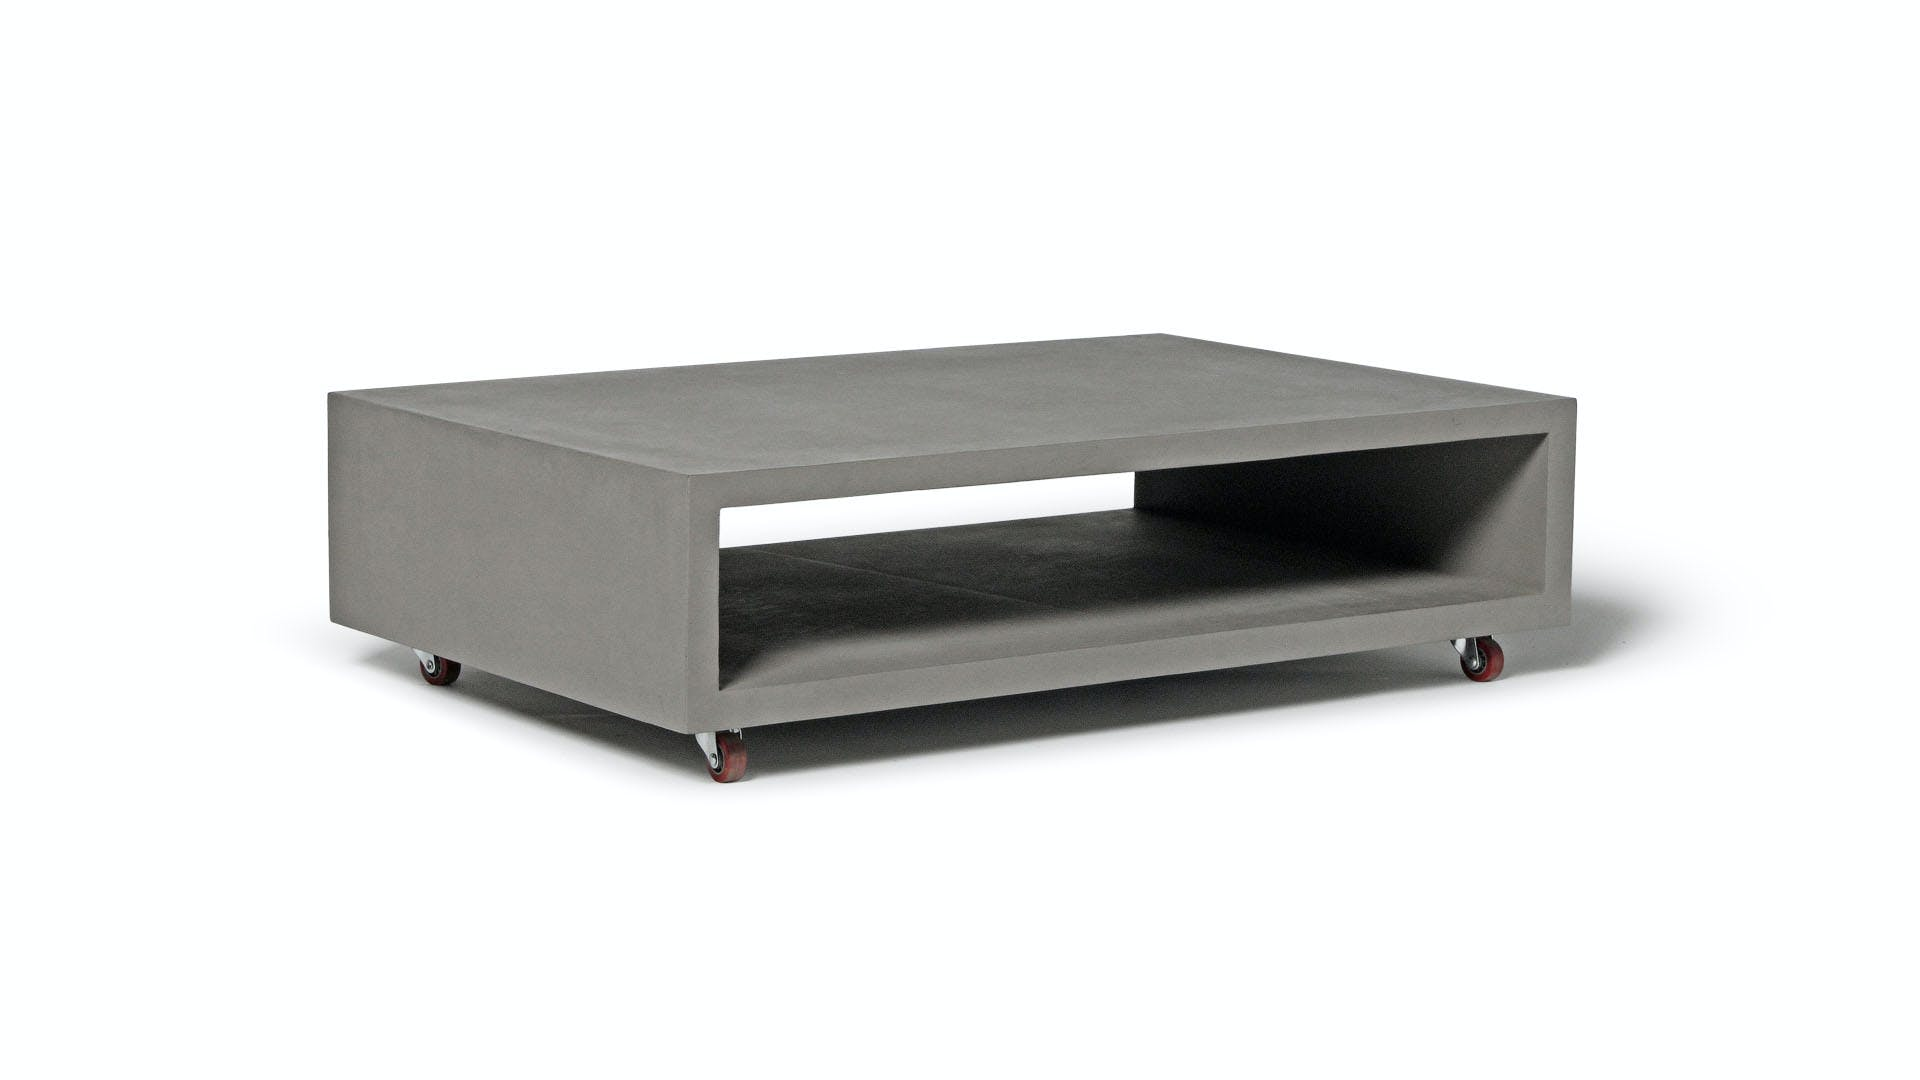 D 09139 Or Dl 09139 Monobloc Rectangular Coffee Table With Wheels 00001